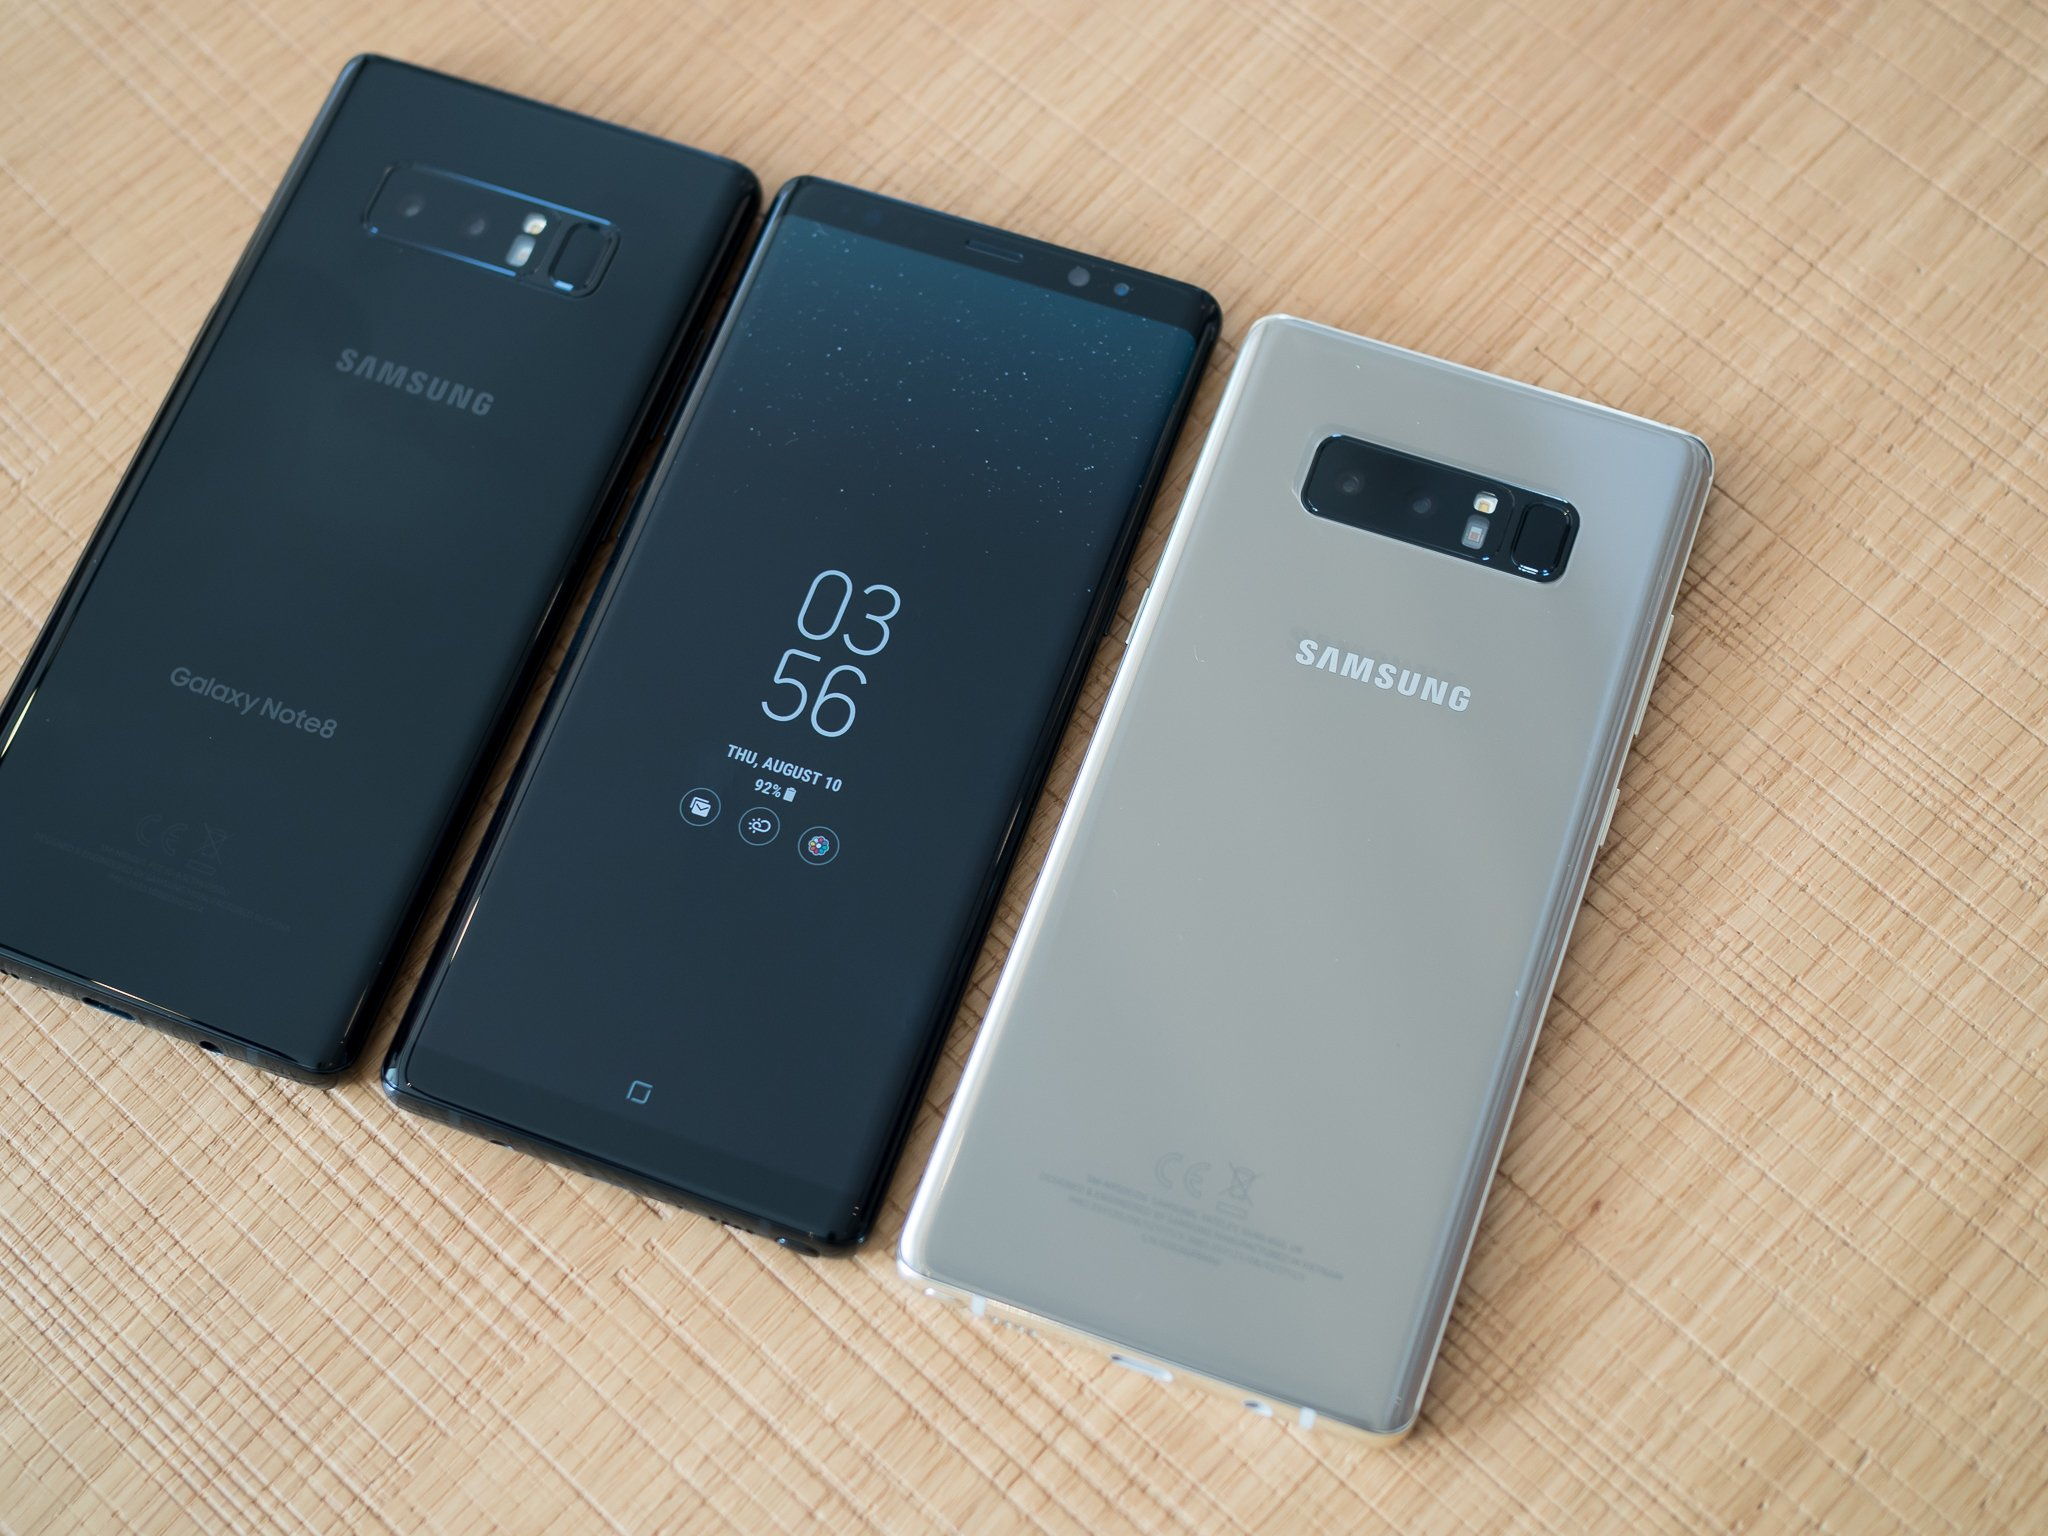 T Mobile Shop Berlin Where To Buy The Galaxy Note 8 Android Central